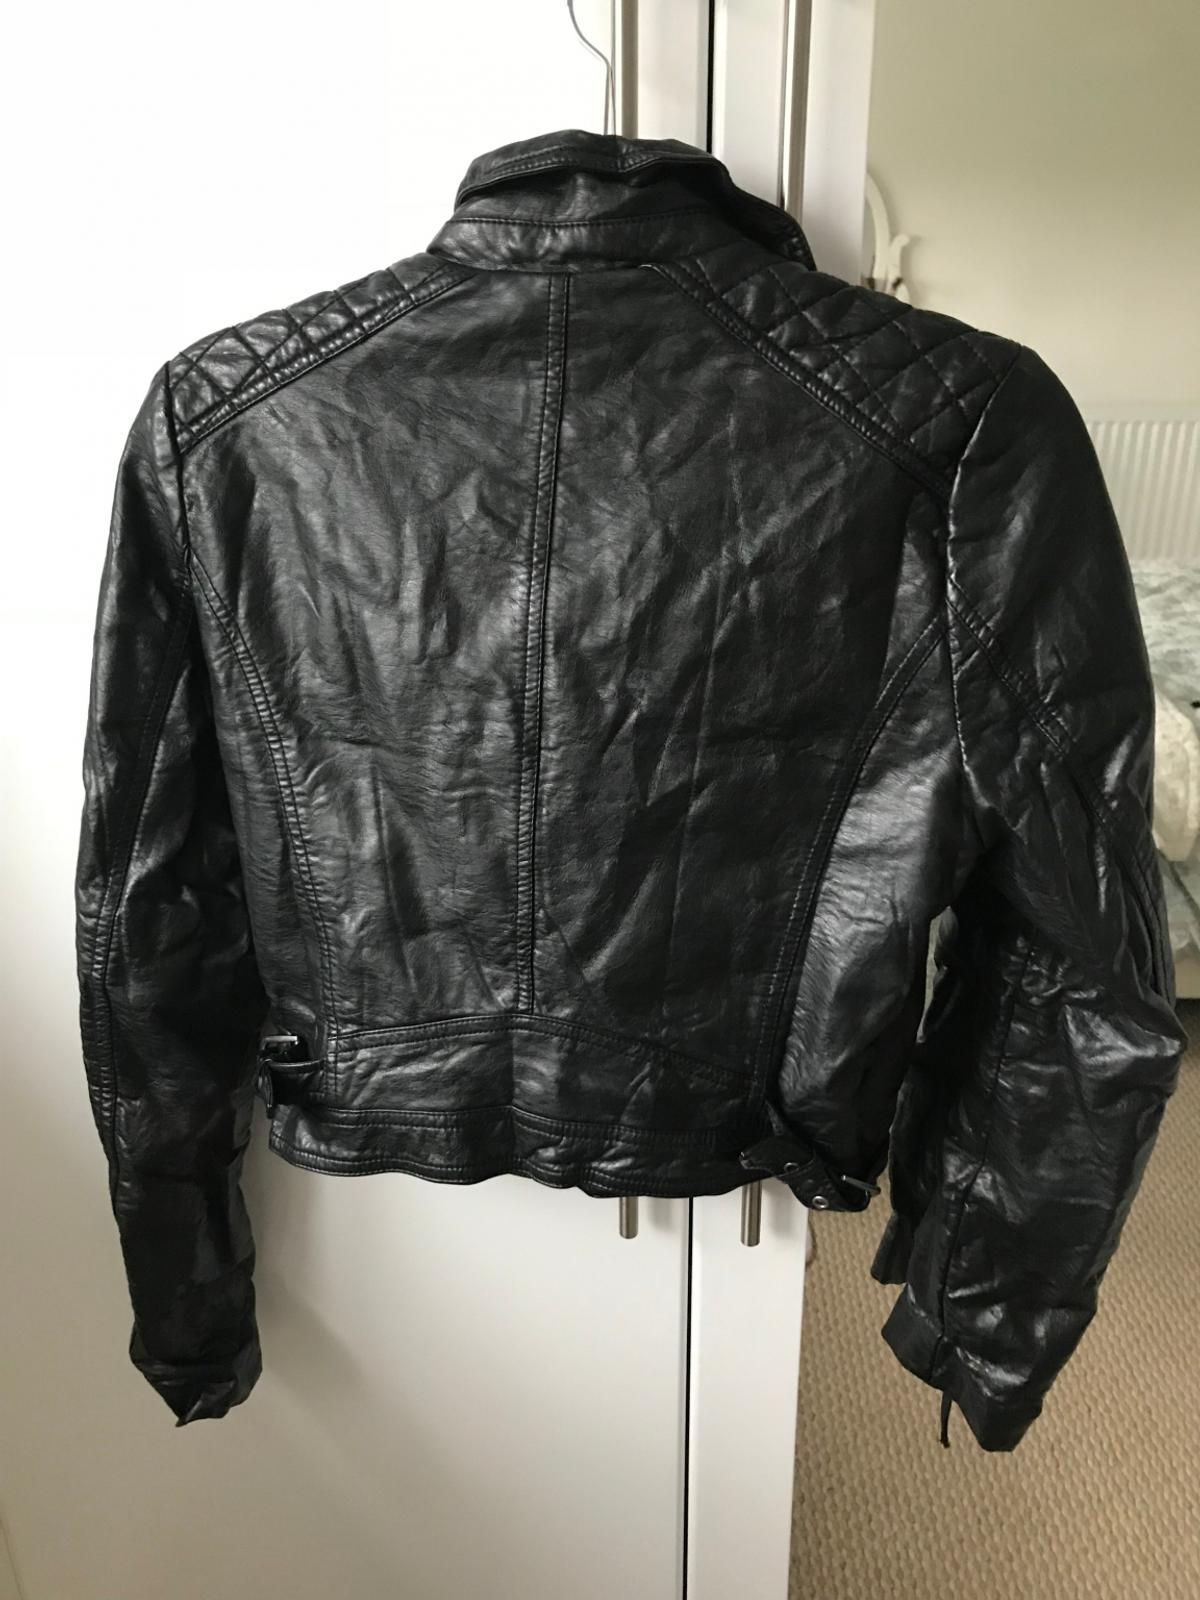 lowest price latest trends of 2019 wholesale price Women`s H&M Black Leather Biker Jacket Size12